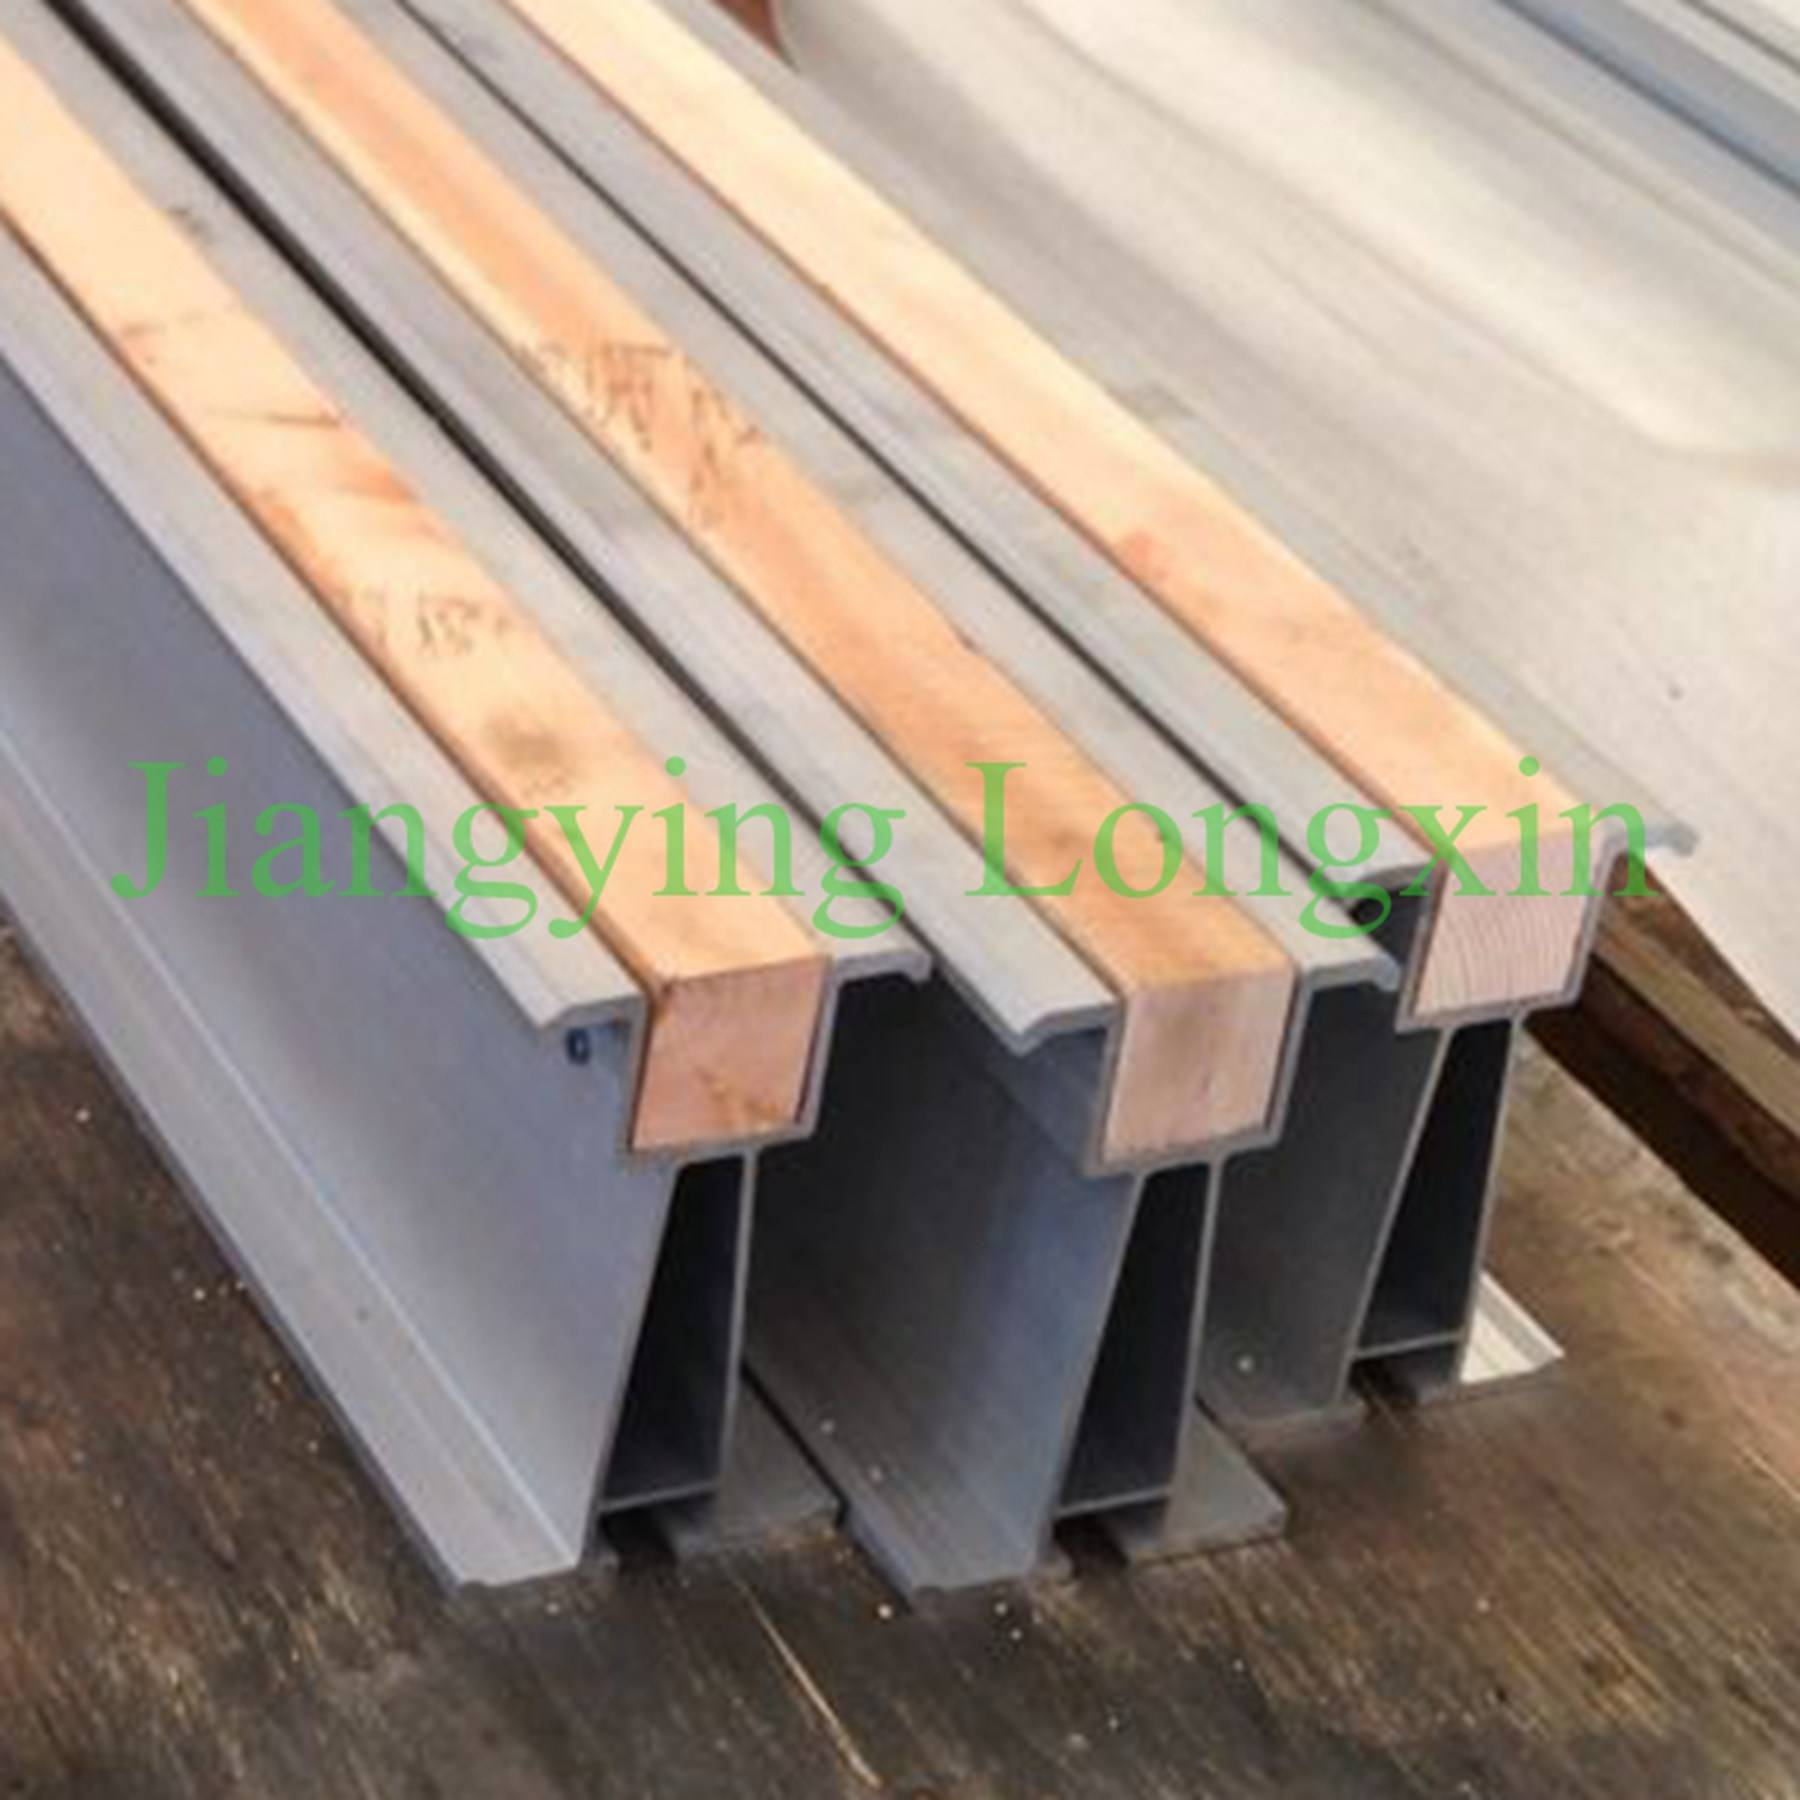 6061 Aluminum scaffolding beam 150x90mm with wood fitter